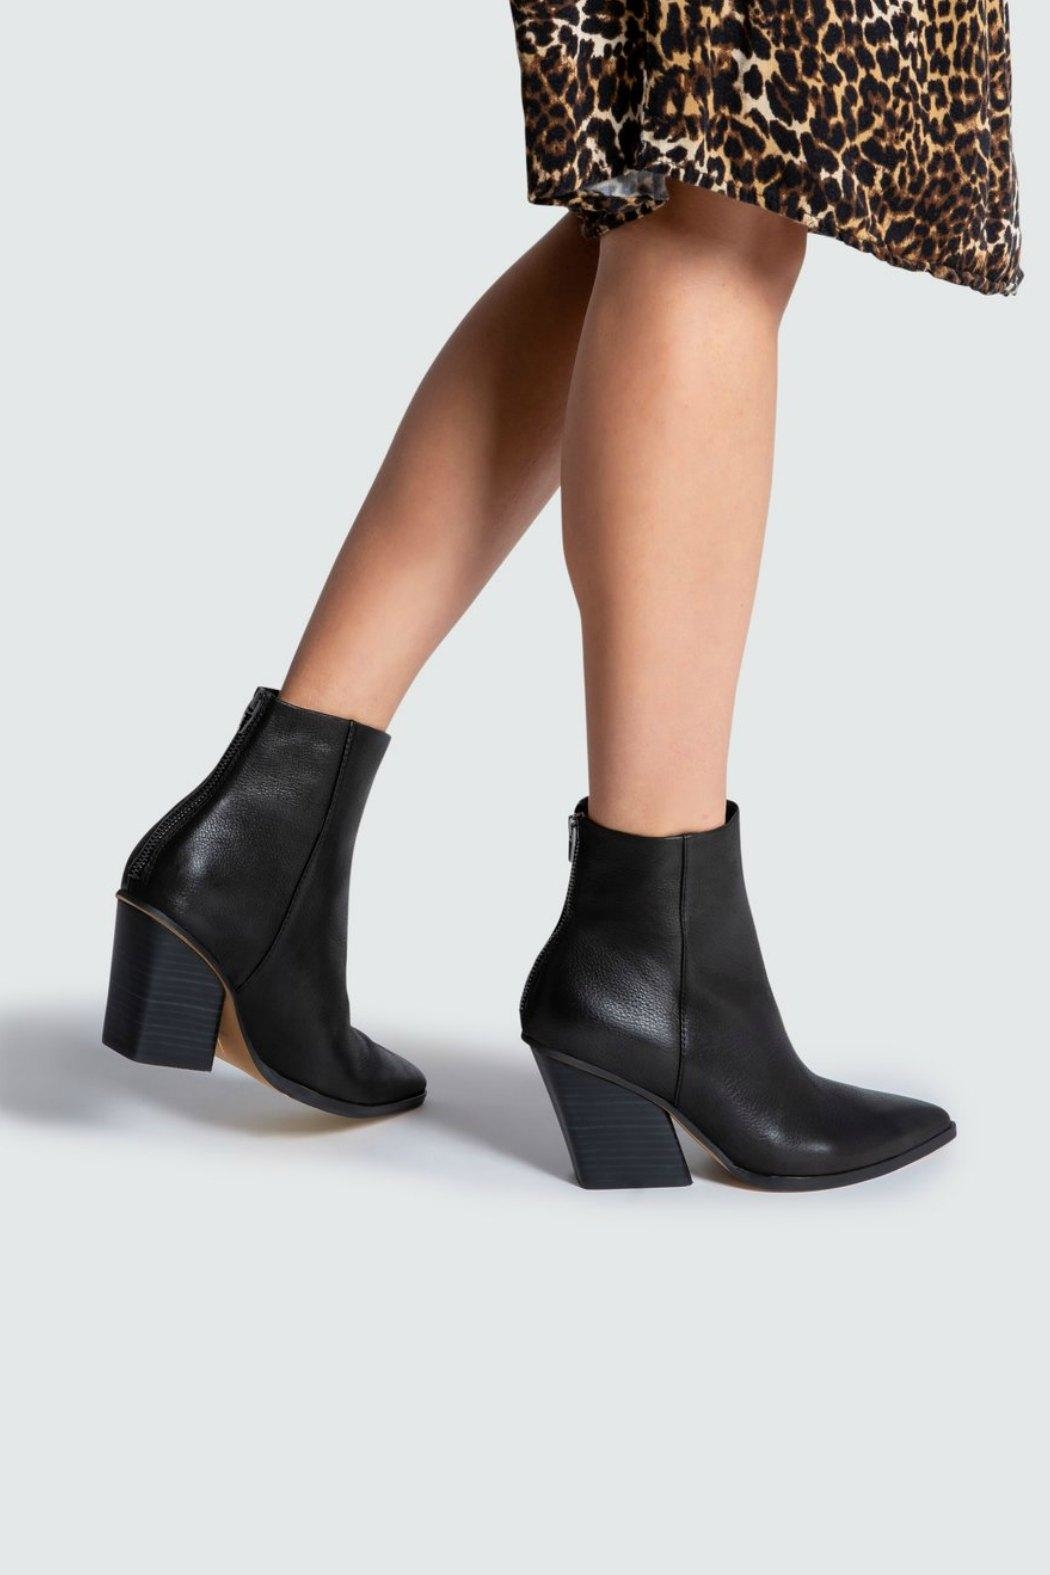 Dolce Vita Issa Wedge-Heel Boot - Side Cropped Image